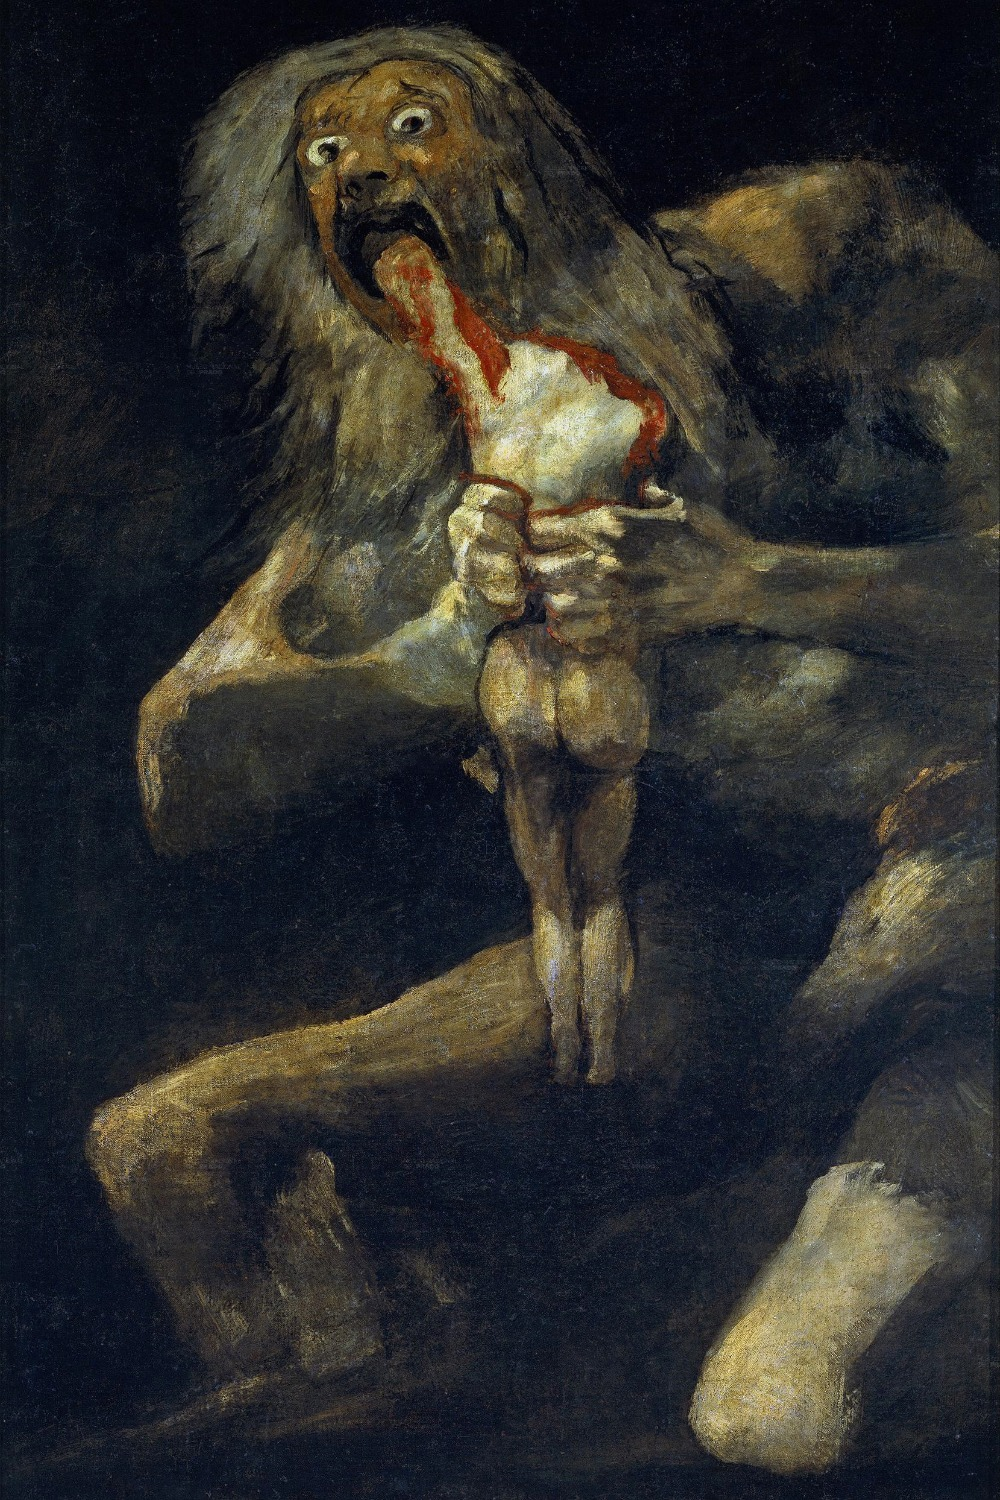 Saturn-Devouring-His-Son-OIL-PAINTING-ON-CANVAS-Hand-Painted-Copy-of-Spanish-artist-Francisco-Goya.jpg